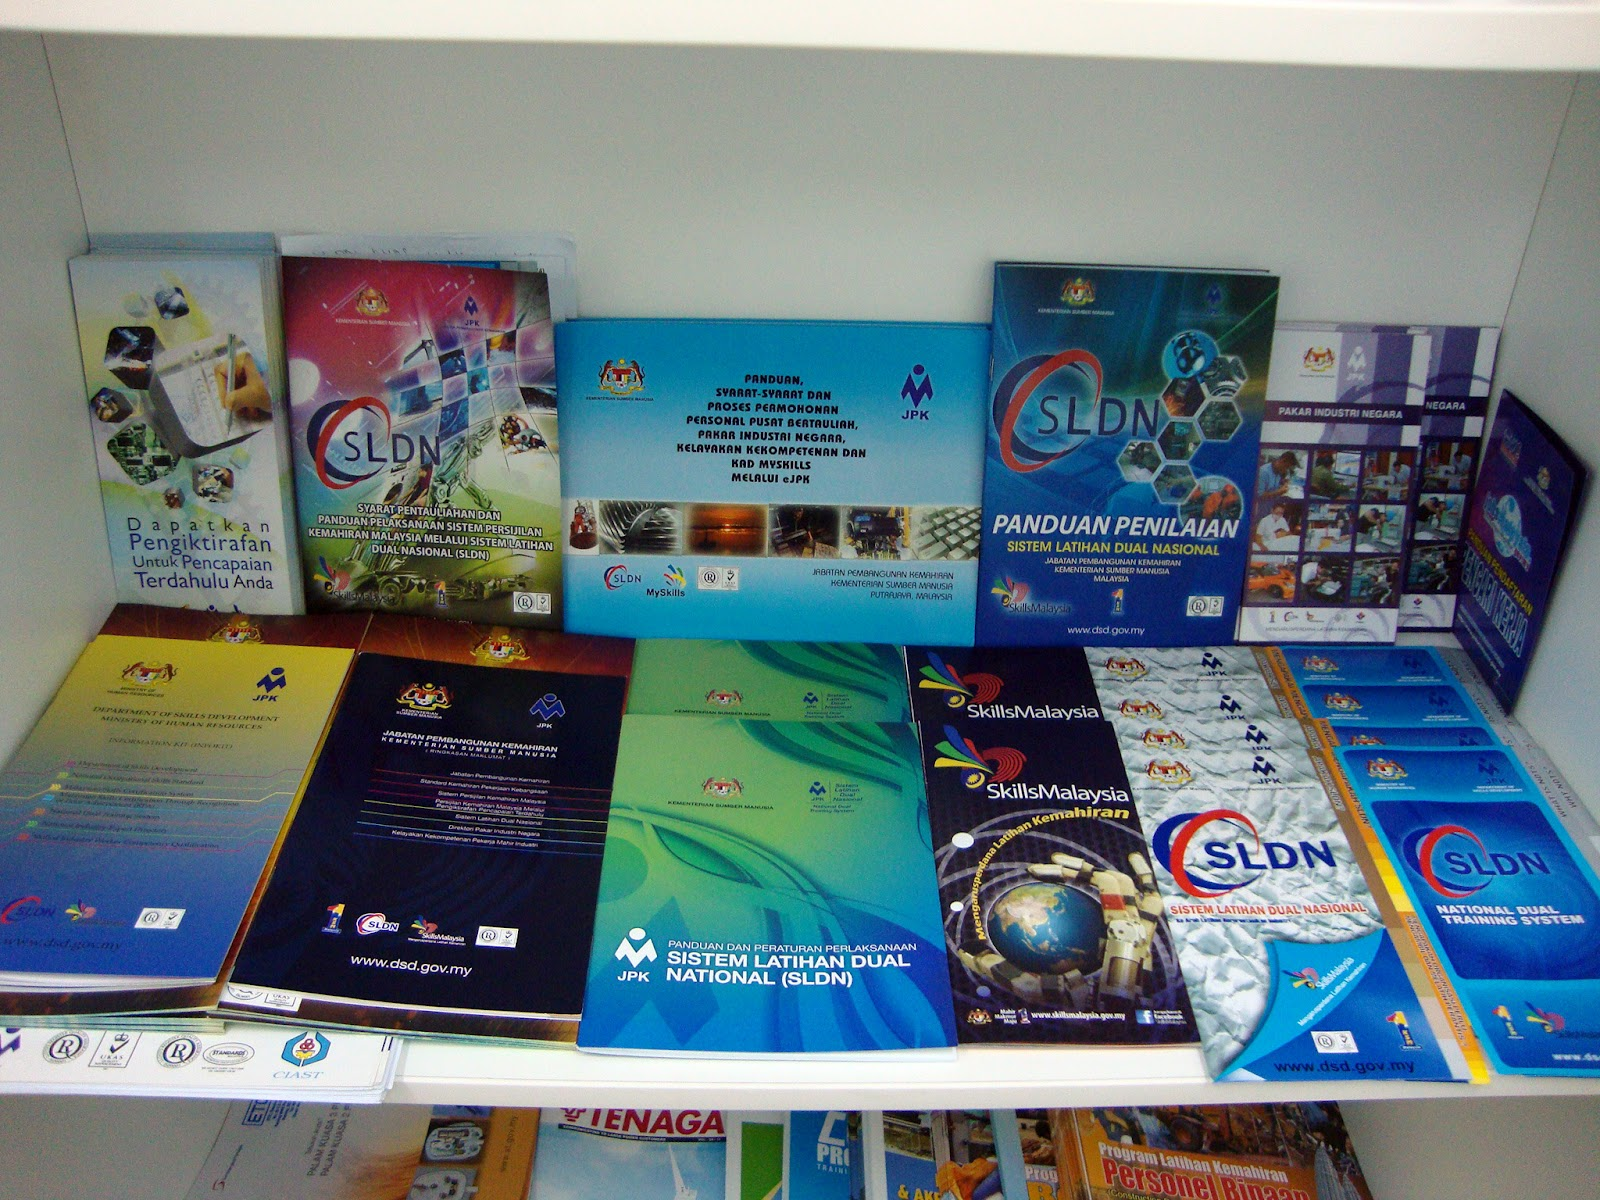 Etc Electrical Training Centre Wiring Books Skill Related Infos